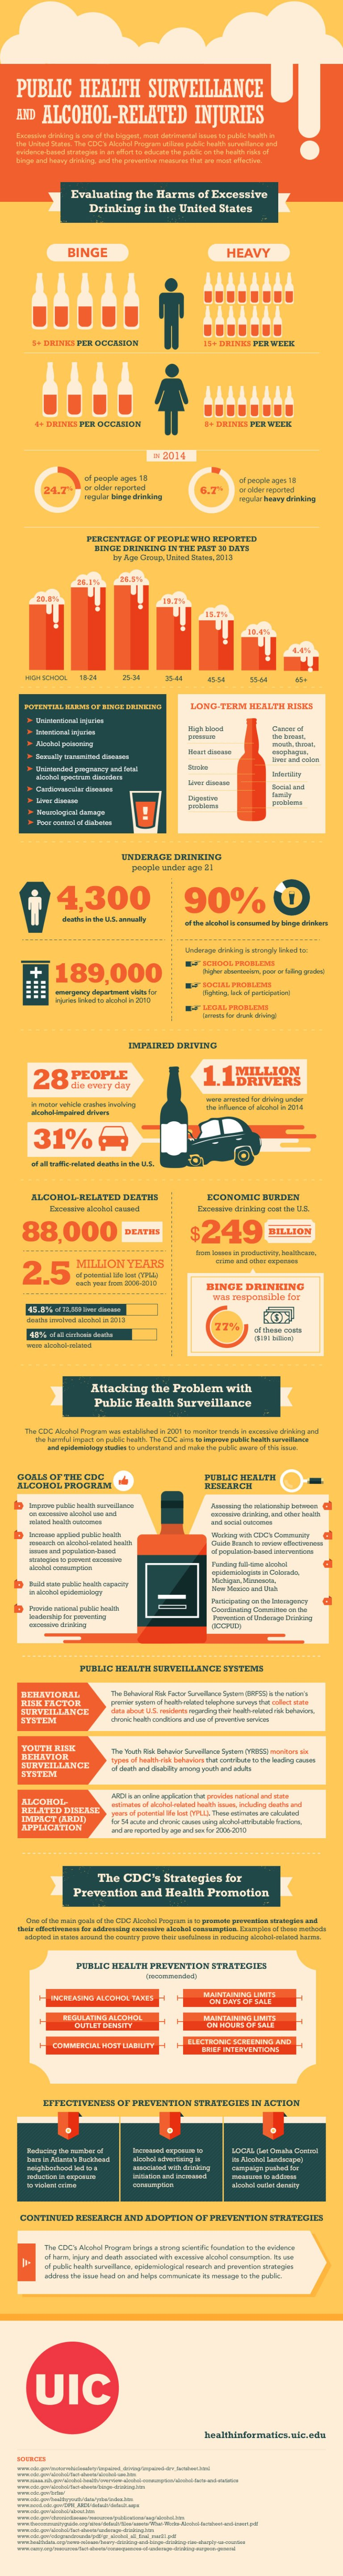 Alcohol-Related-Injuries